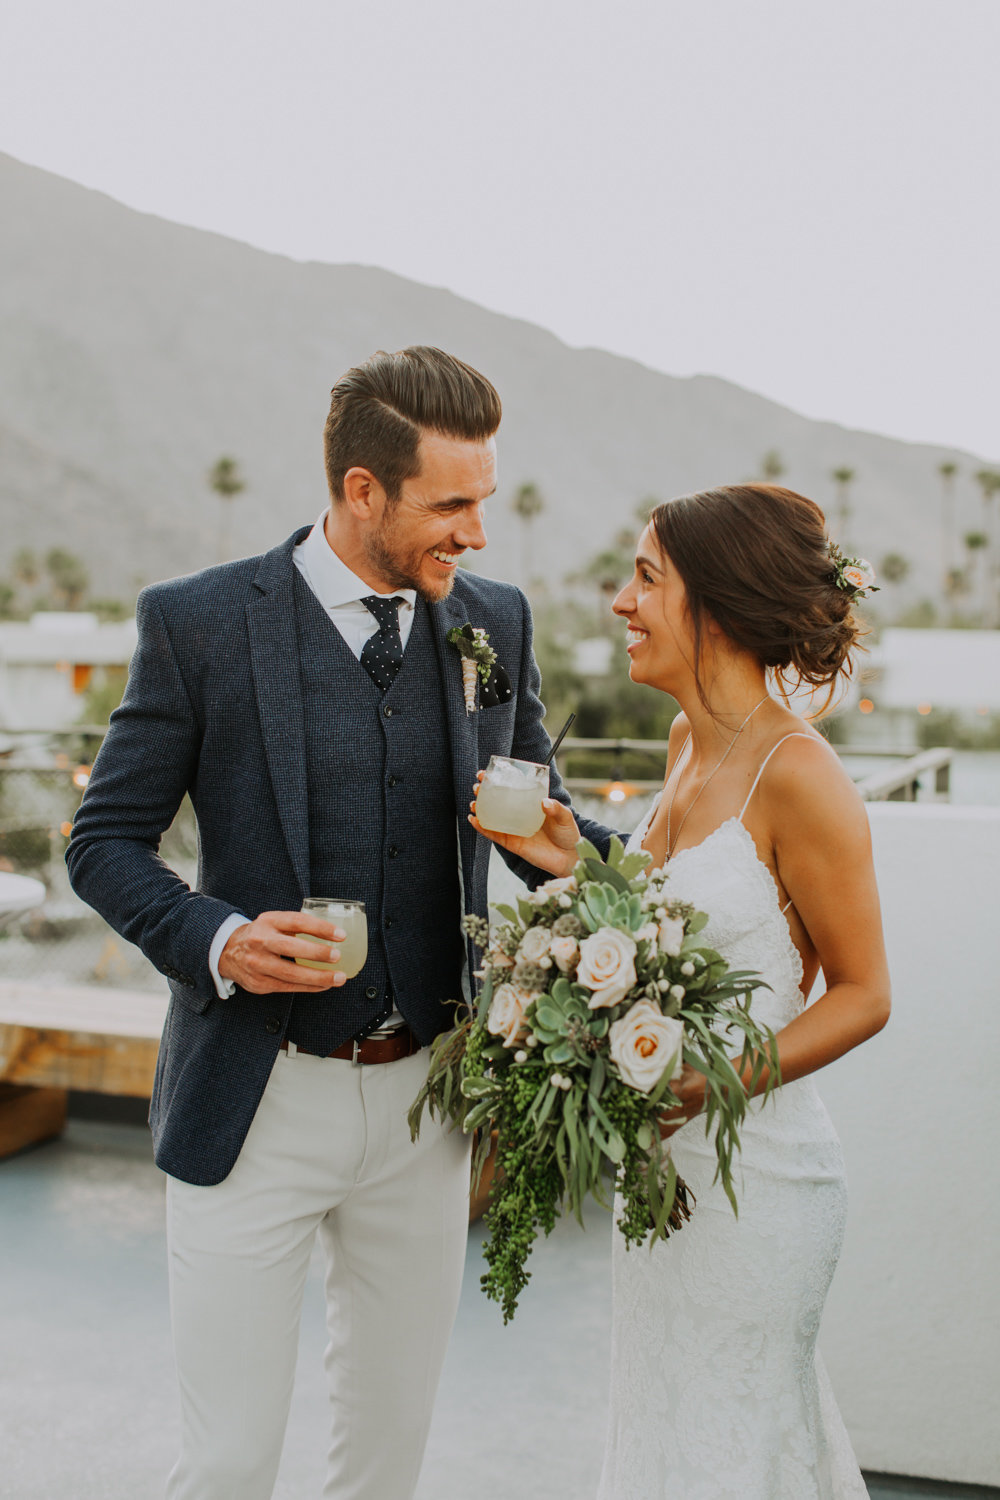 Brianna Broyles_Palm Springs Wedding Photographer_Ace Hotel Wedding_Ace Hotel Palm Springs-58